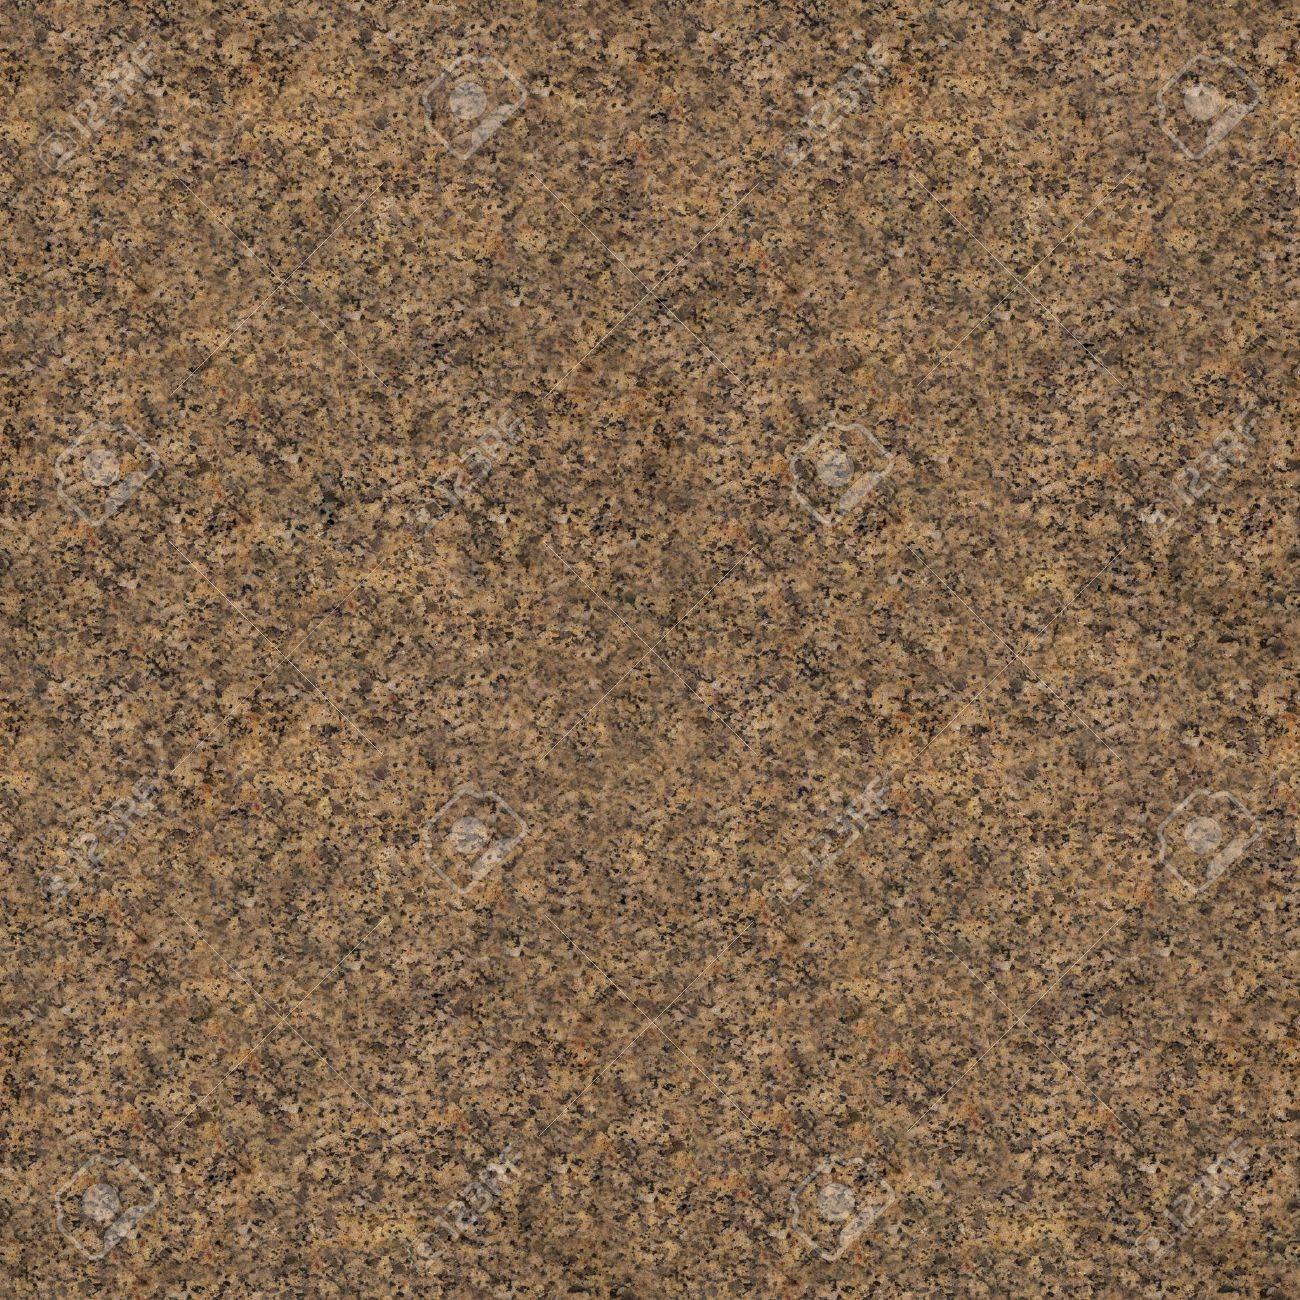 Tiling Brown And Black Granite Texture Or Background Stock Photo